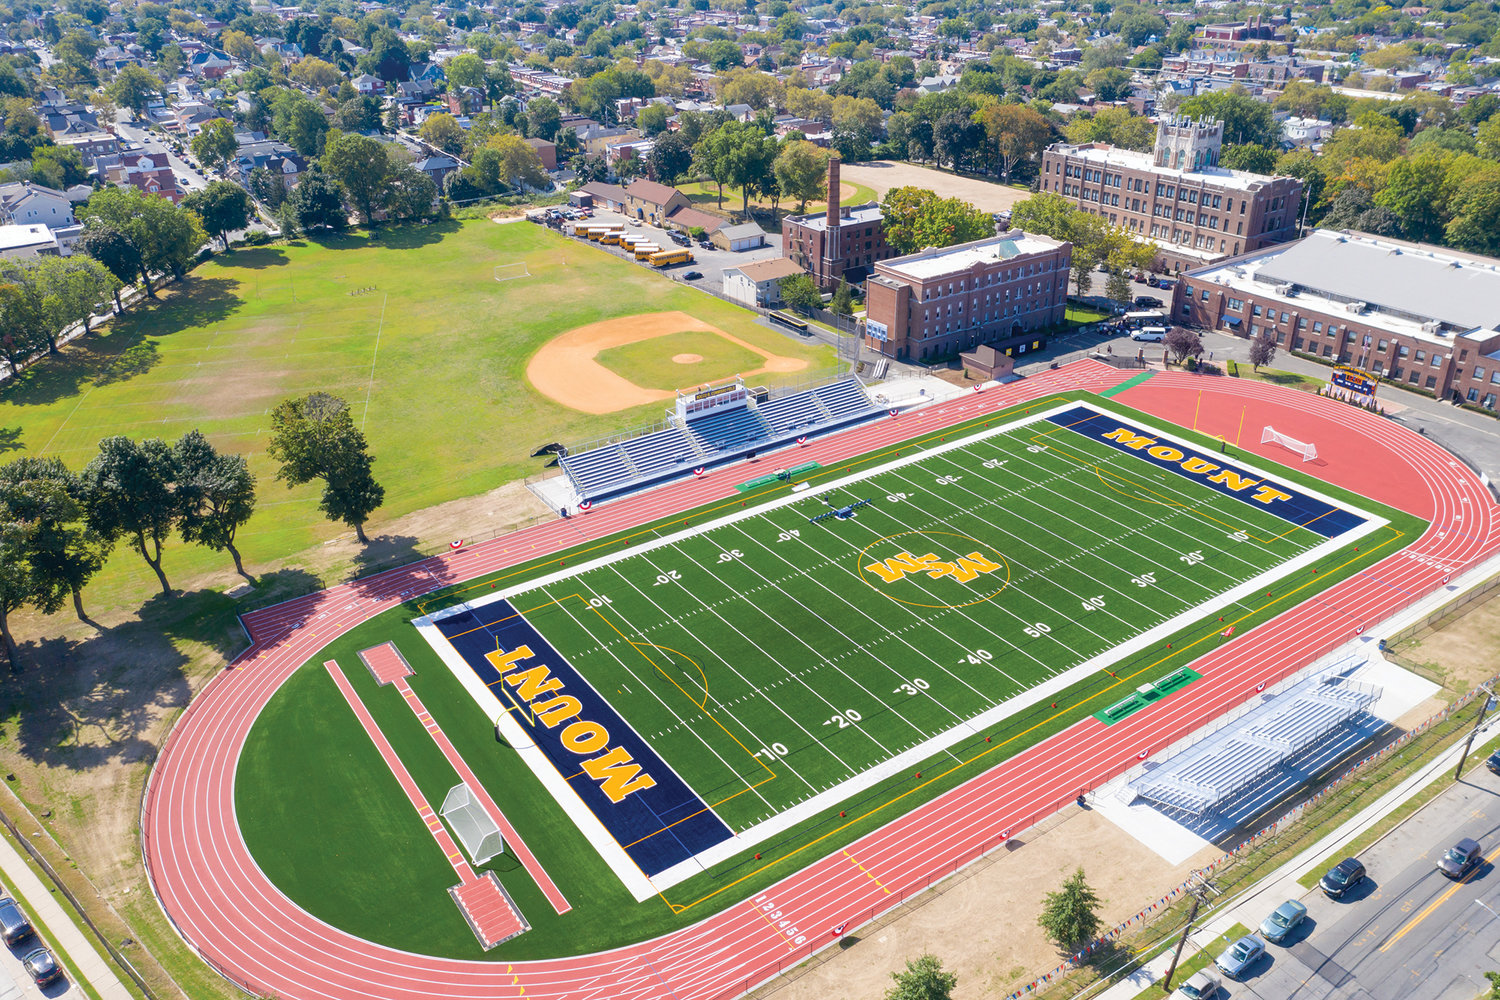 An aerial view of the new Phyllis and Angelo Mozilo '56 Sports Complex at Mount St. Michael Academy in the Bronx. The official opening came Sept. 21 at the football home opener, a 21-8 loss to Holy Cross High School of Queens. The complex includes the Vincent Promuto '56 Stadium, the Brother Linus Carroll, F.M.S., Track and the Rocco B. Commisso '67 Field. The project cost $3 million.